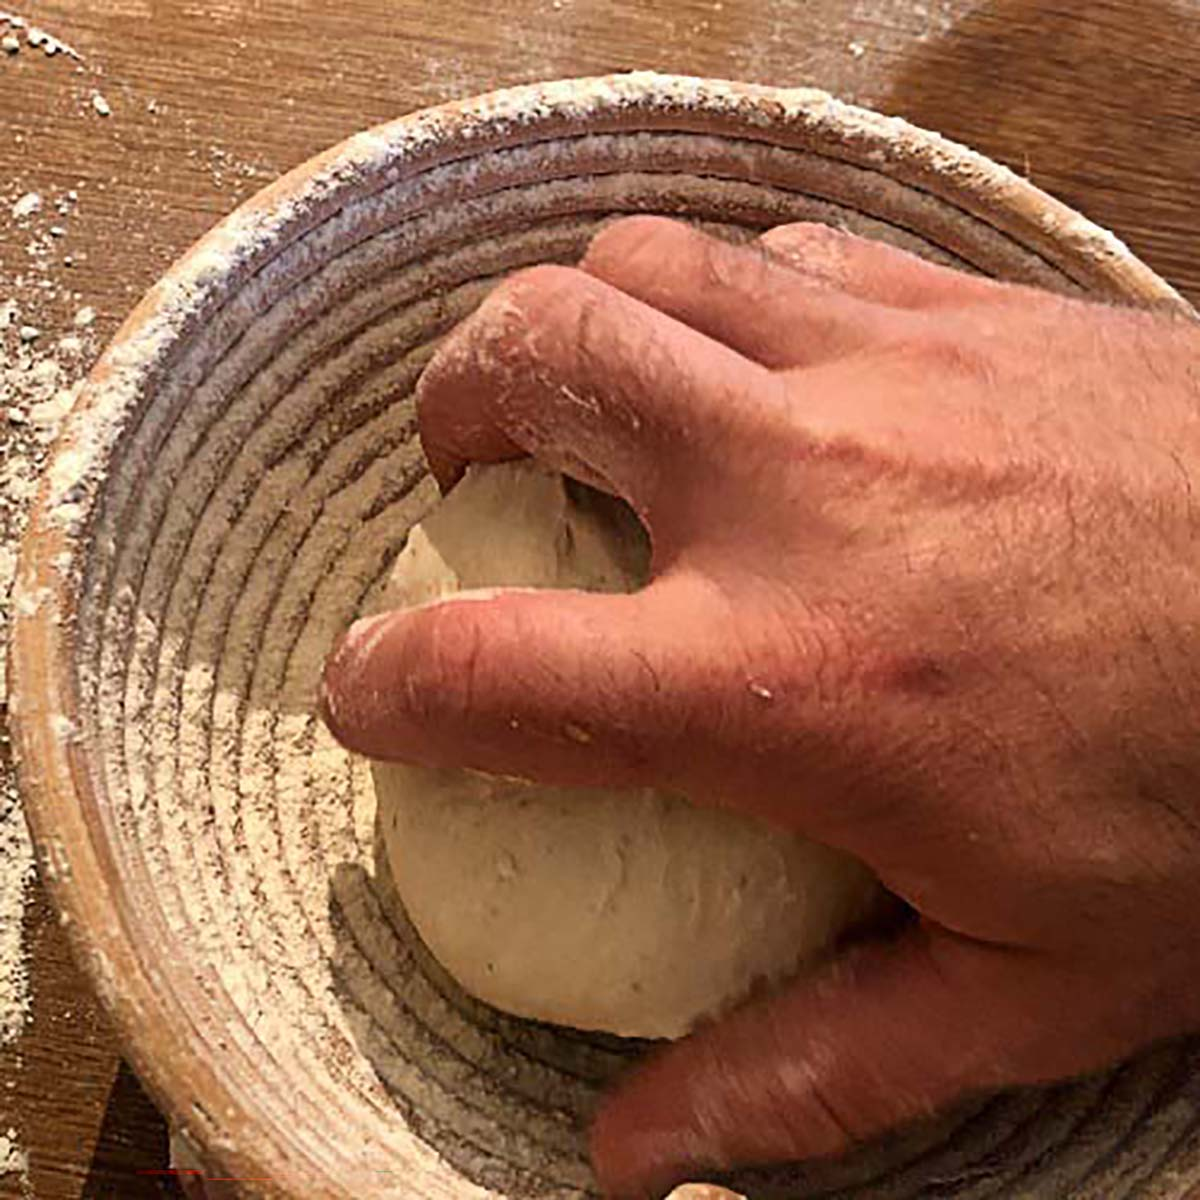 Dough proofing timetable